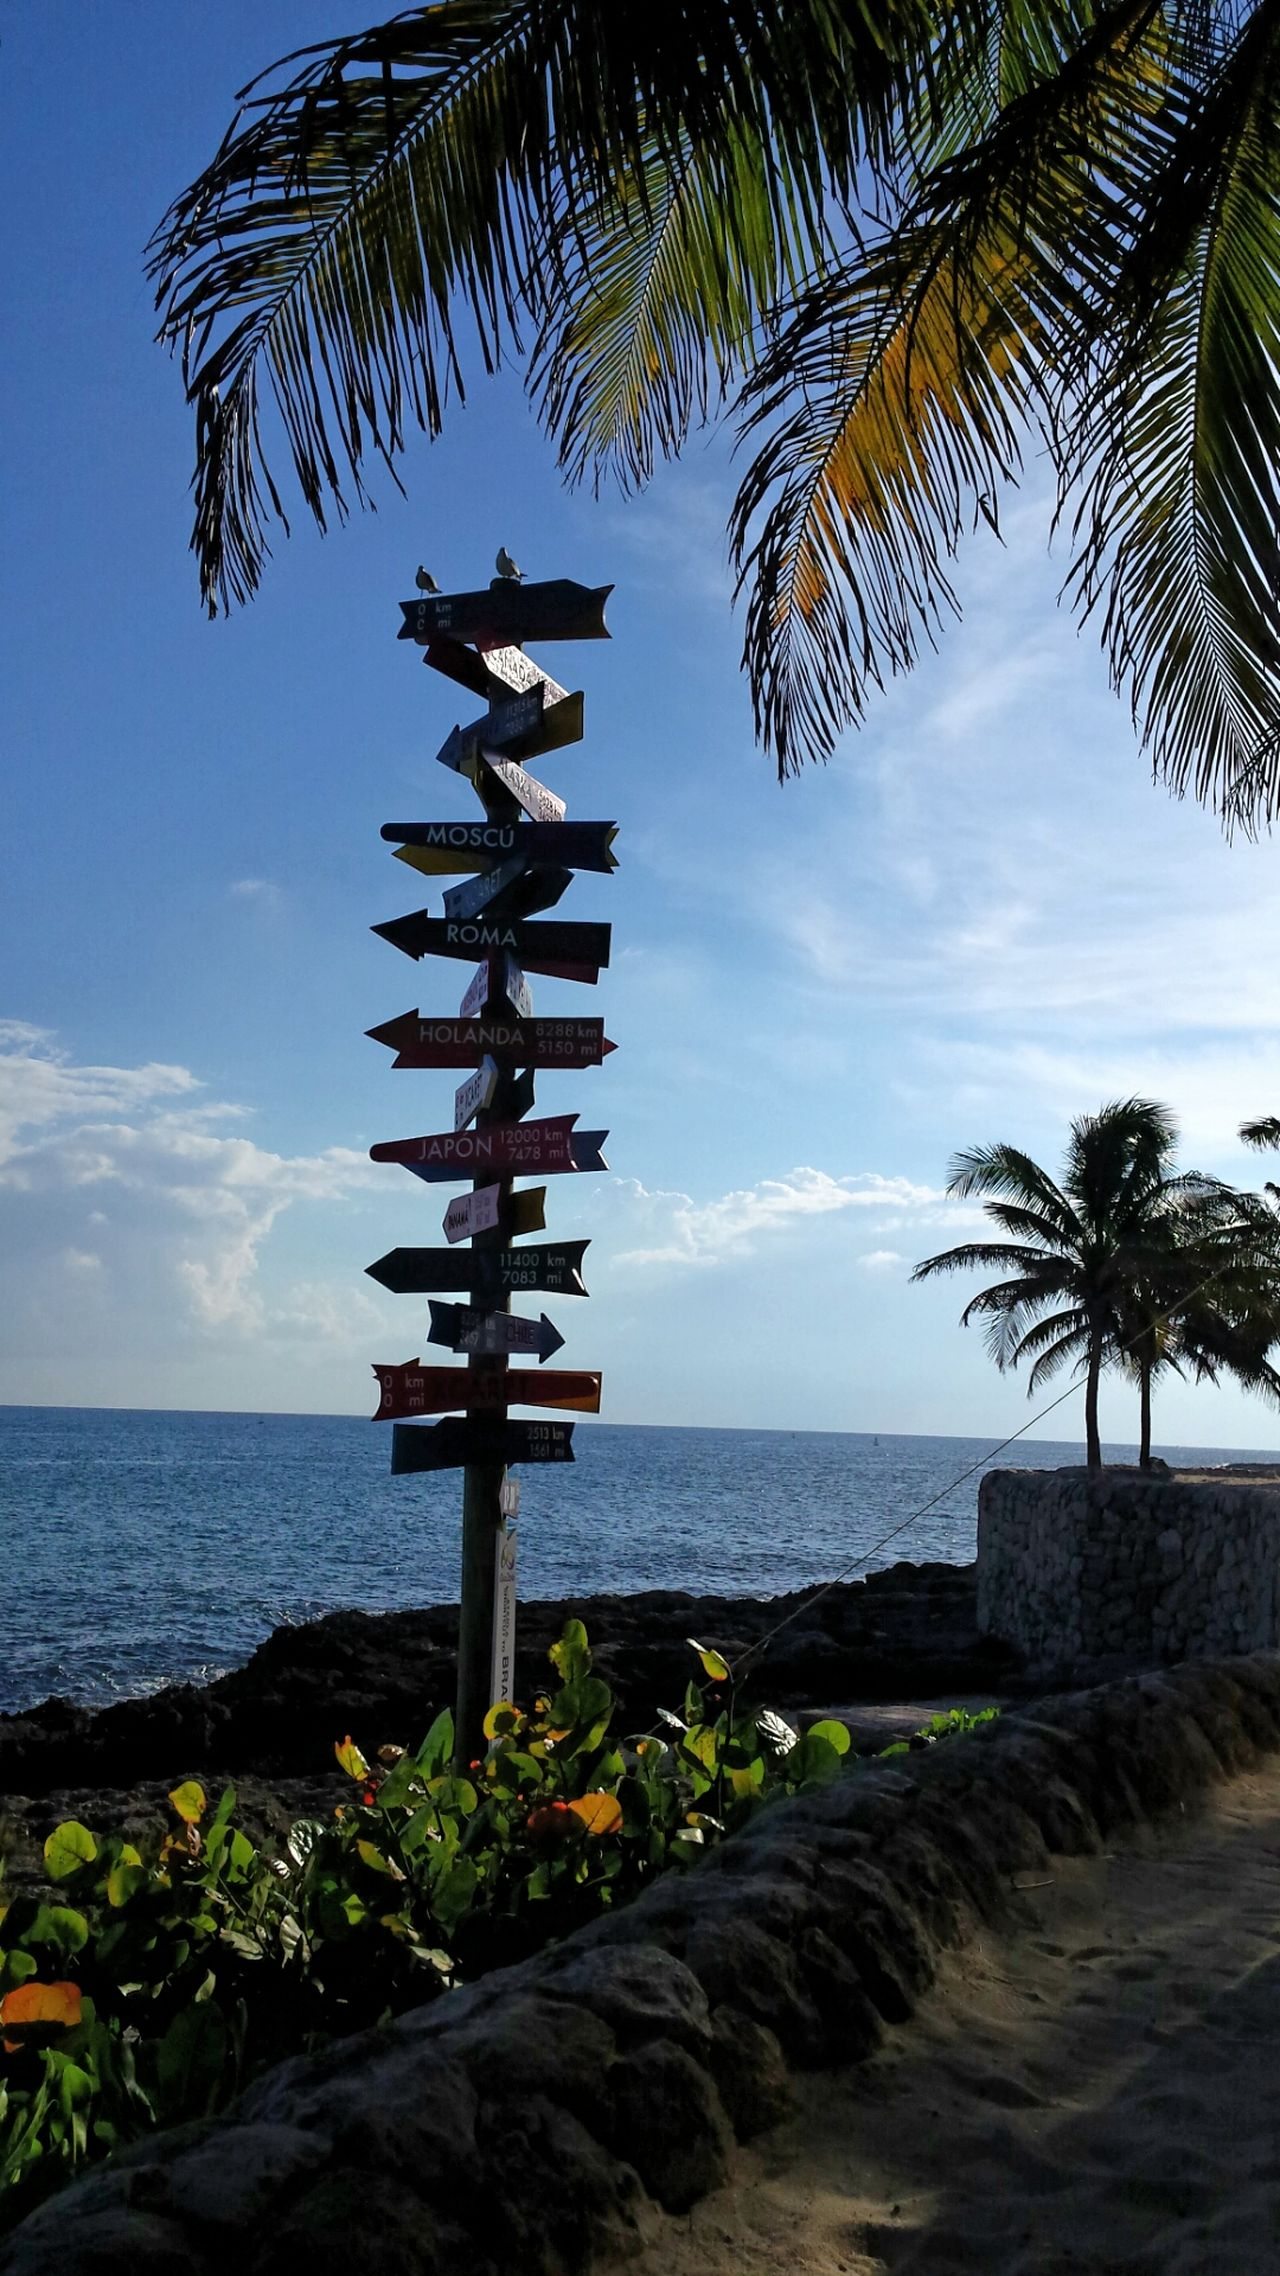 Q Questions Quest Questioning Life Question Everything Decisions Decisive Moment Way From My Point Of View From Where I Stand Sign Signal Arrow Arrow Symbol Arrows Destination Places Mexico Xcaret Caribbean Sea Caribbean Sea Sea And Sky Sea View Blue Wave